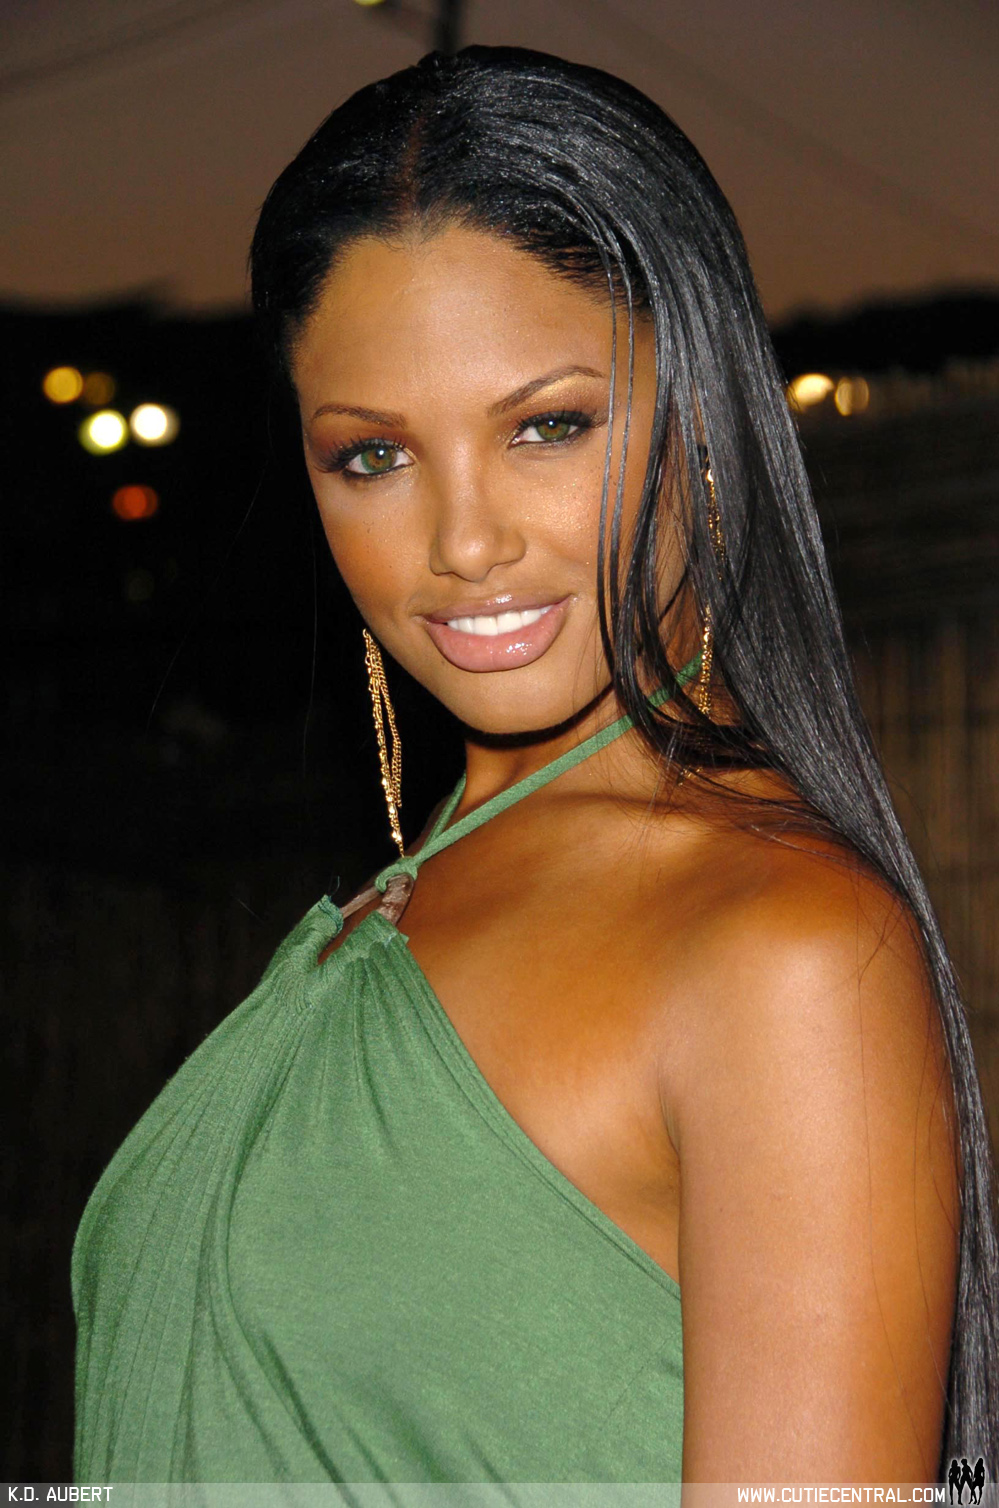 K. D. Aubert nudes (17 photos), Topless, Hot, Boobs, see through 2019